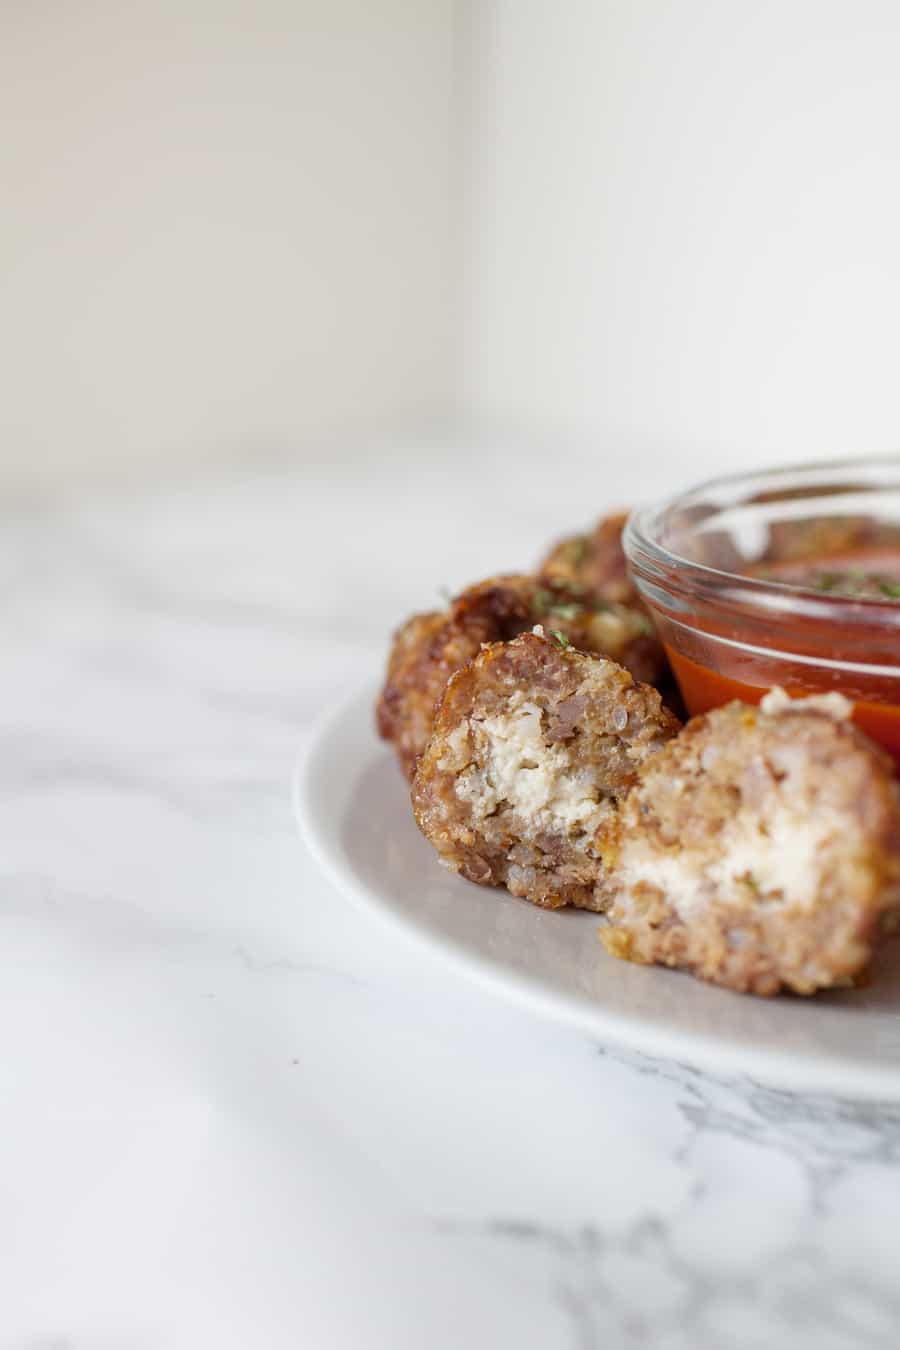 Looking for a quick and easy appetizer for the Big Game? These ricotta stuffed sausage meatballs are so easy to make. Your football friends will go wild for these quick baked ricotta stuffed sausage meatballs at your Big Game party! party food | meatballs from scratch | meatball recipes | meatballs | appetizer recipes | superbowl party food | football food